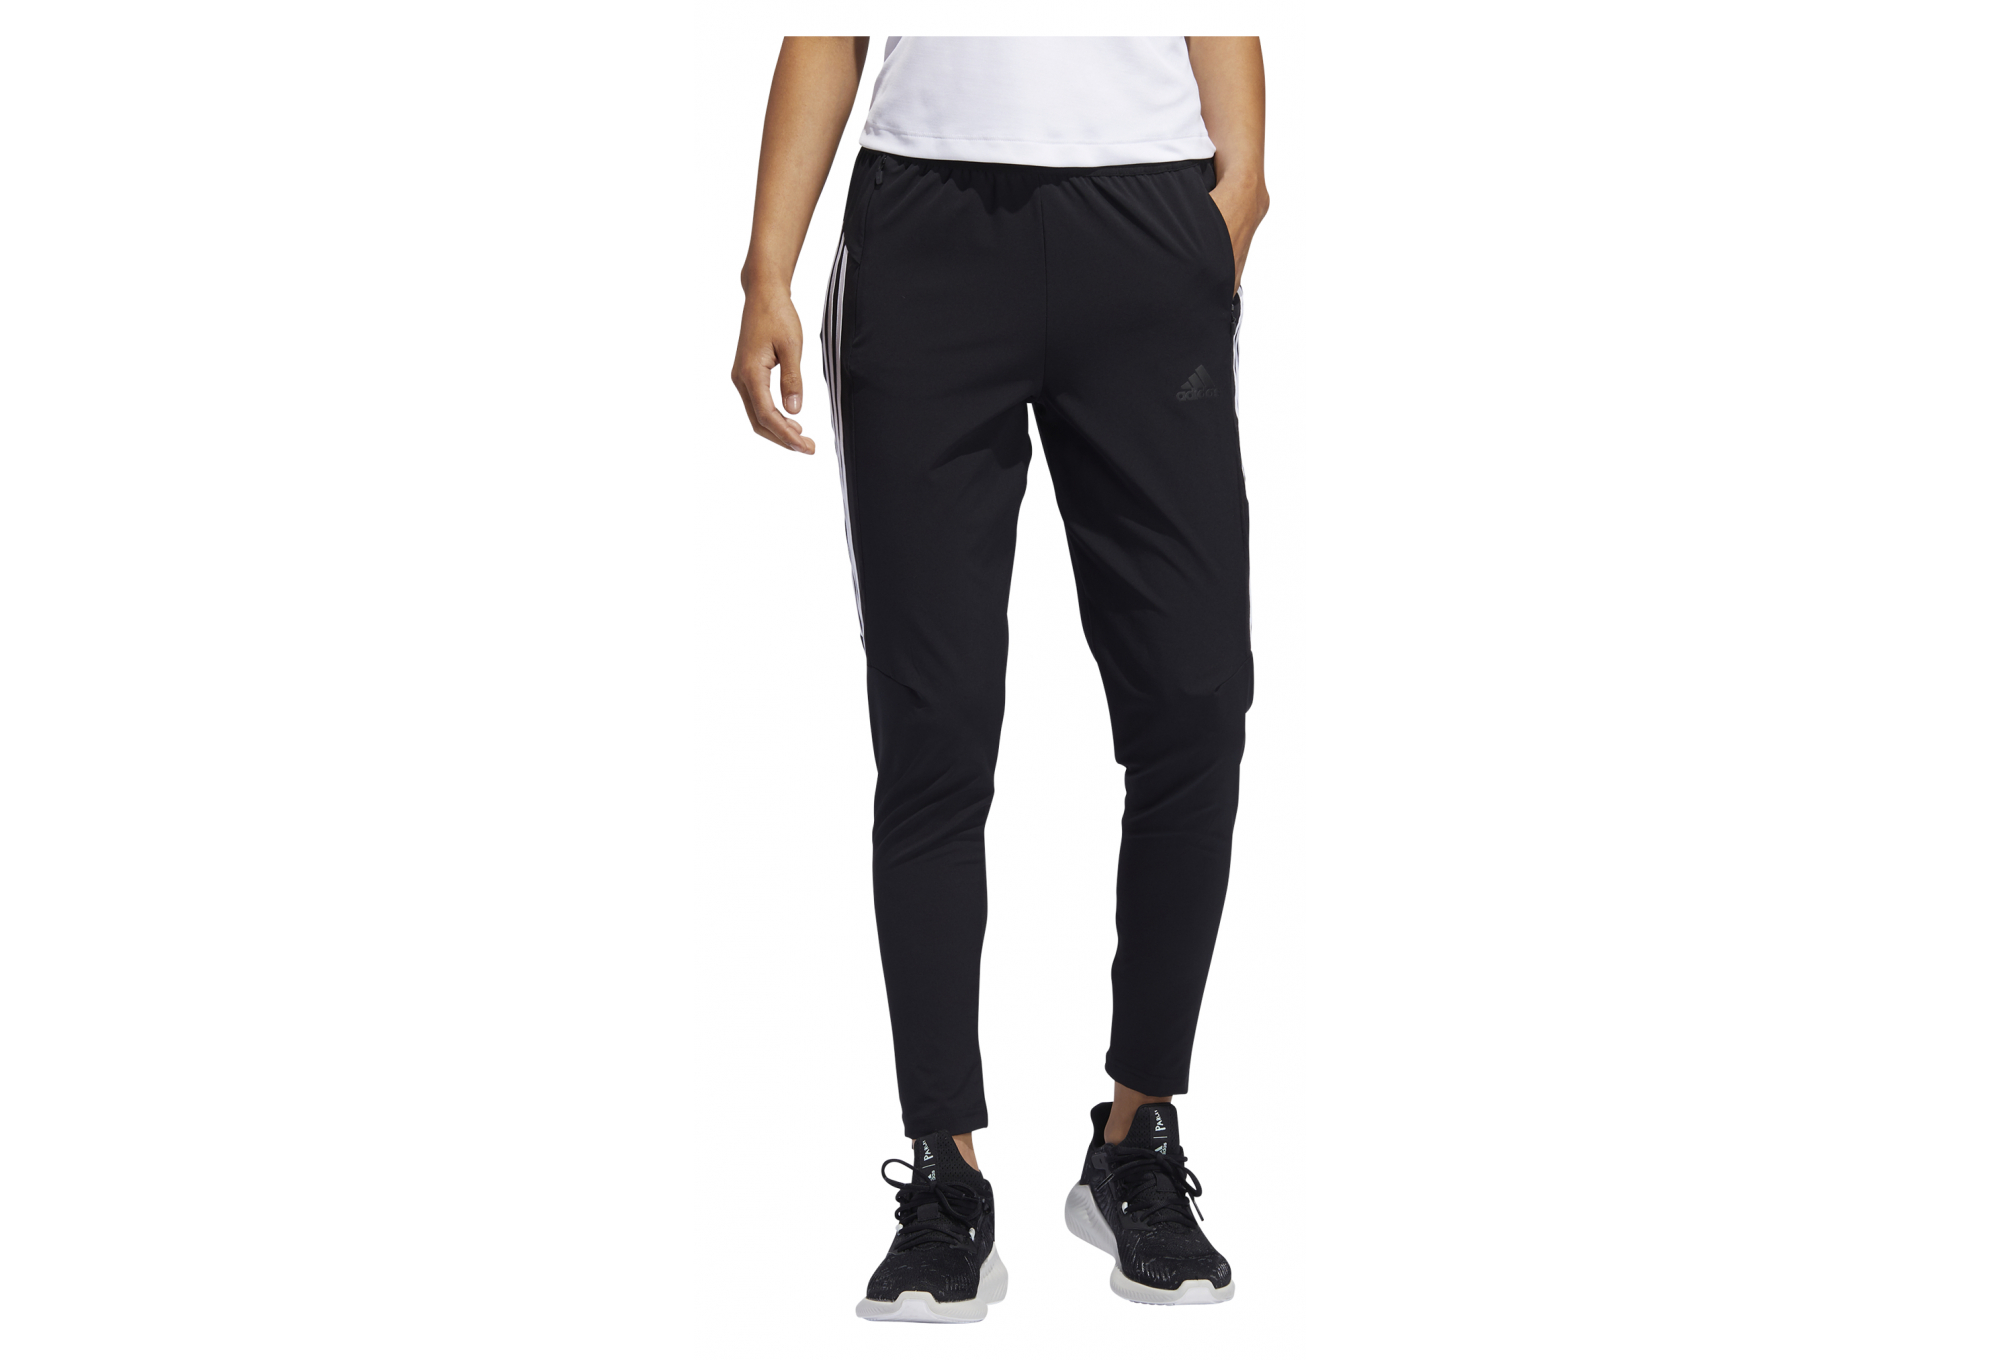 site professionnel nouvelle version le plus en vogue Pantalon femme adidas 3-Stripes